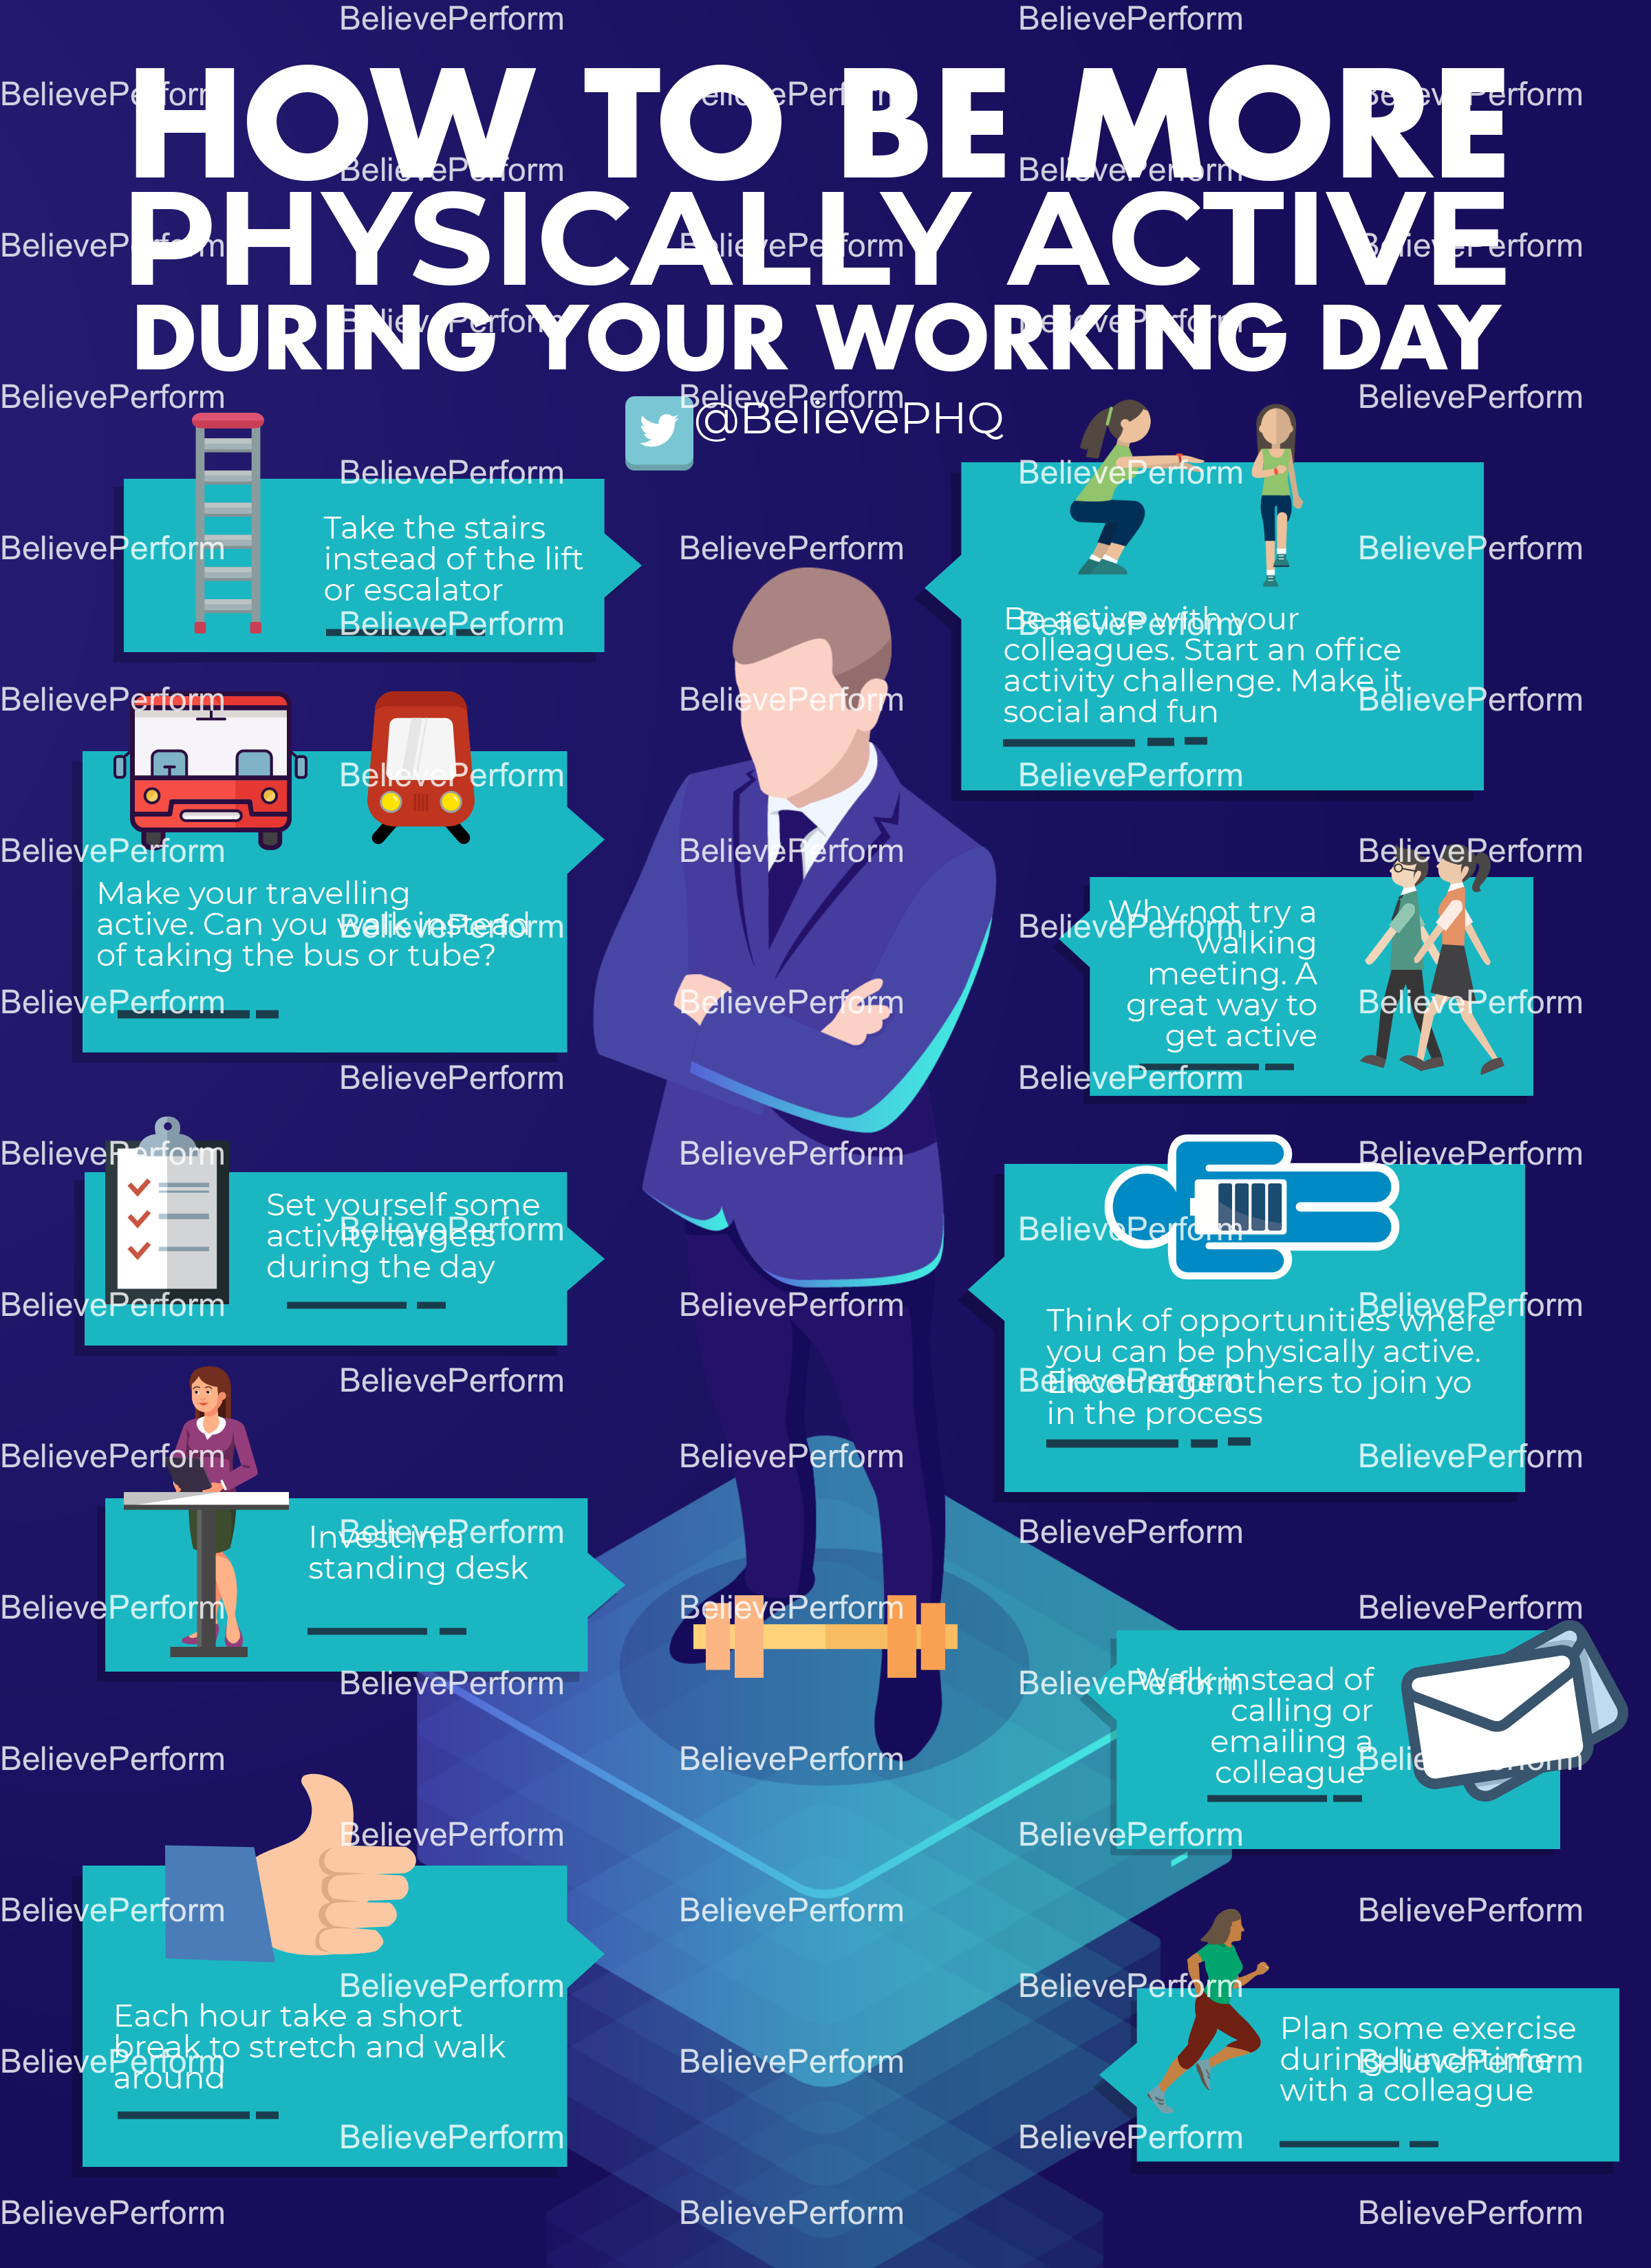 How to be more physically active during your working day